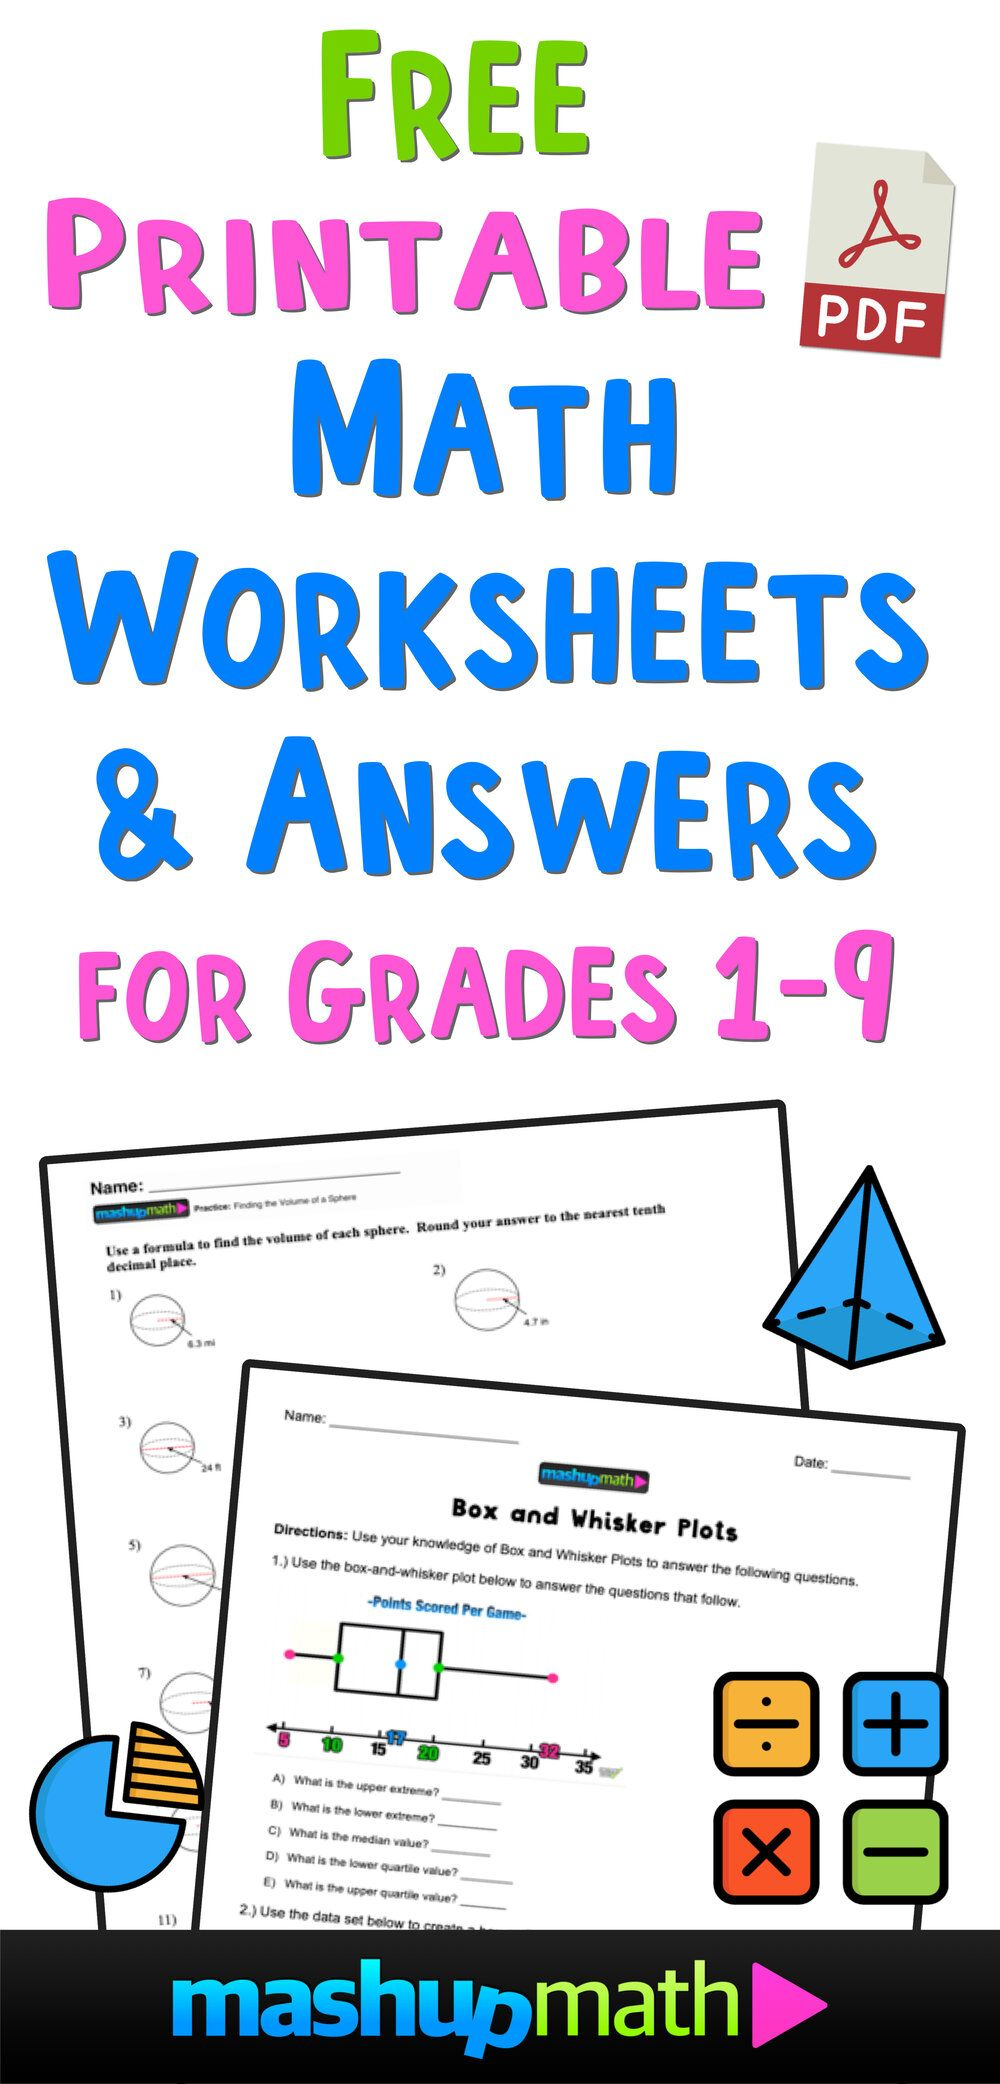 Homeschool Math Worksheet 10 Times Table Frog 1 Gif 790 1022 1 Gif Matematica